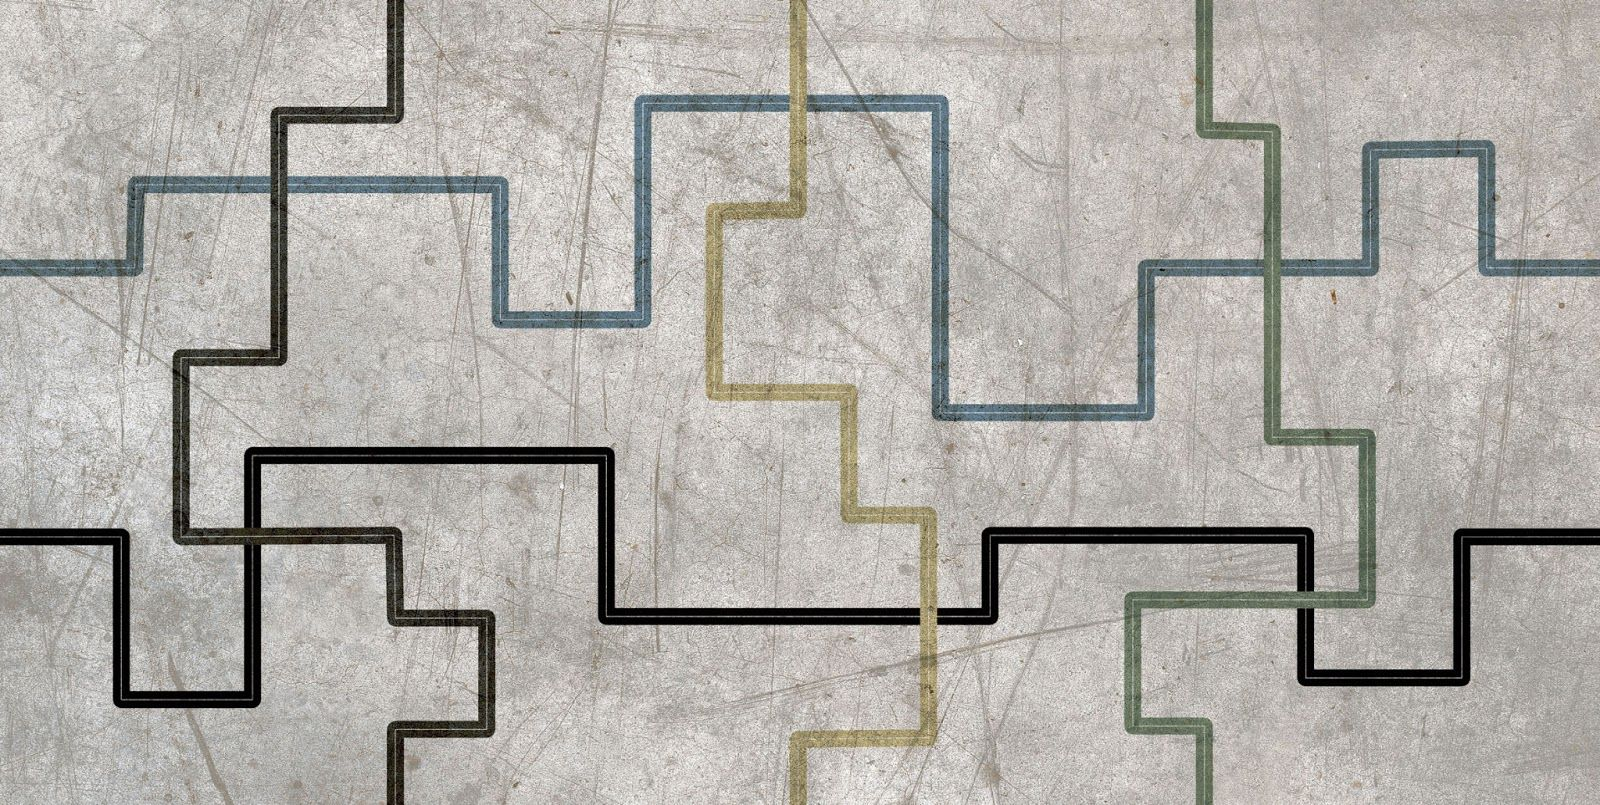 tiles textures 3ds max GREY WALL TILES Recherche Google Texture